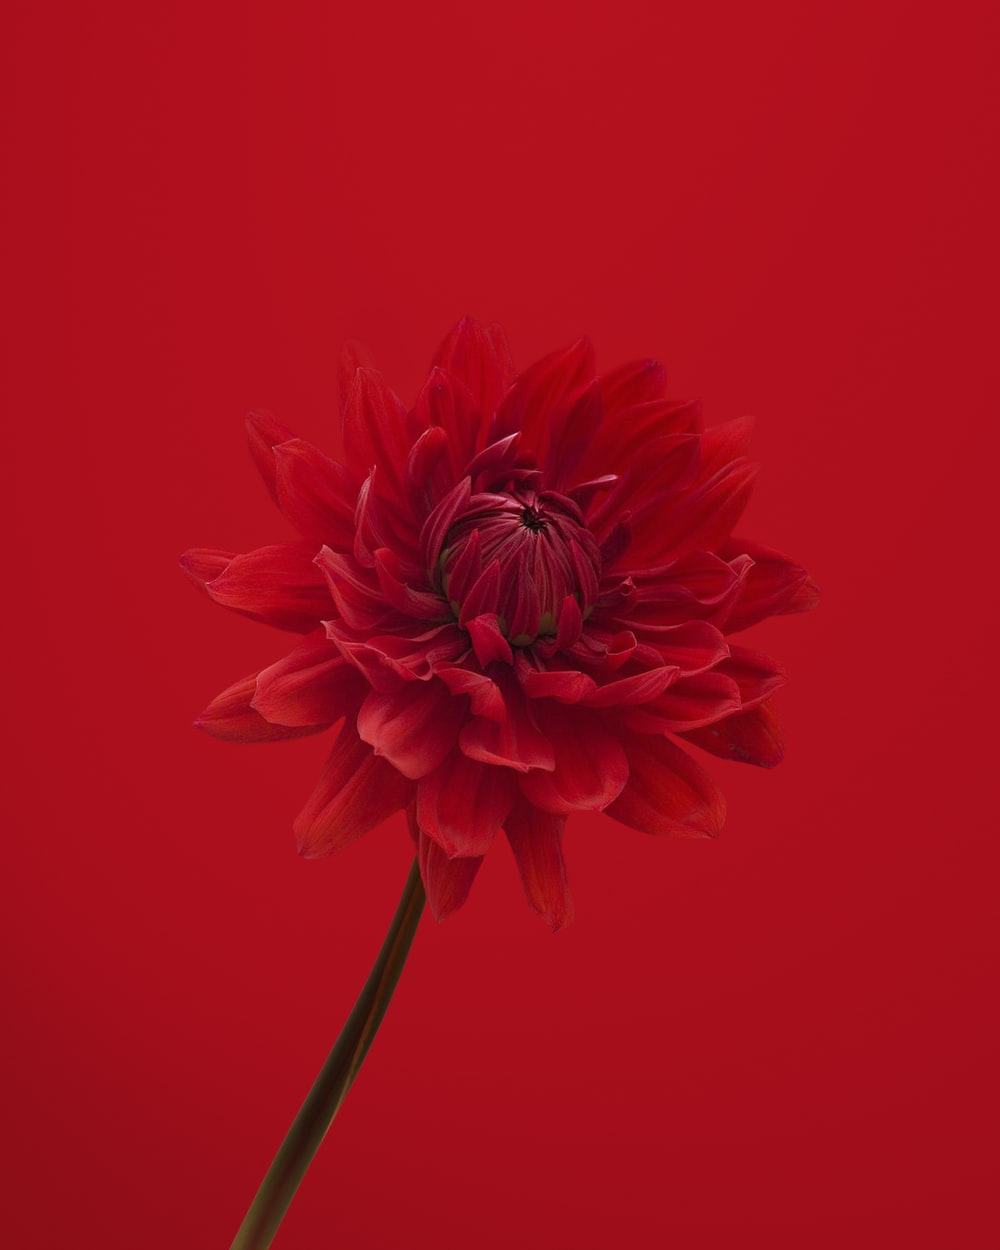 red flower in red background